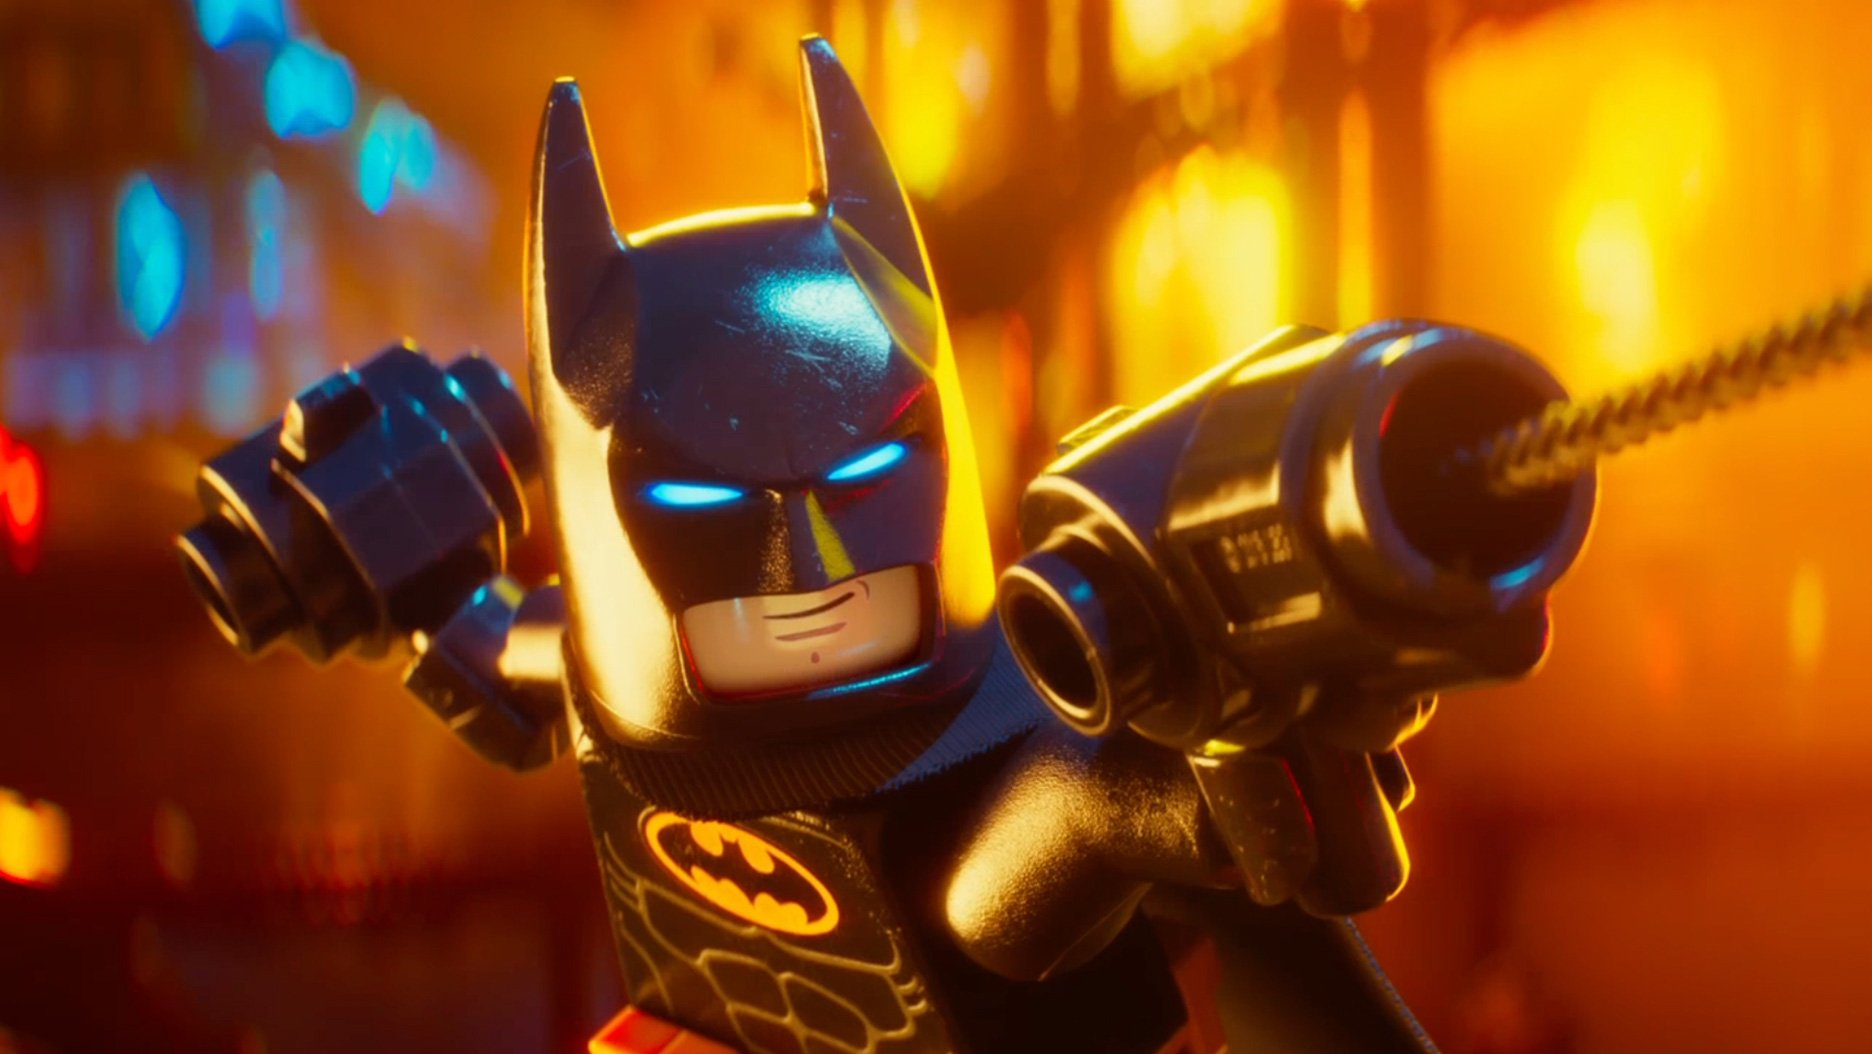 Image de LEGO Batman : Le film avec le Bat-grappin